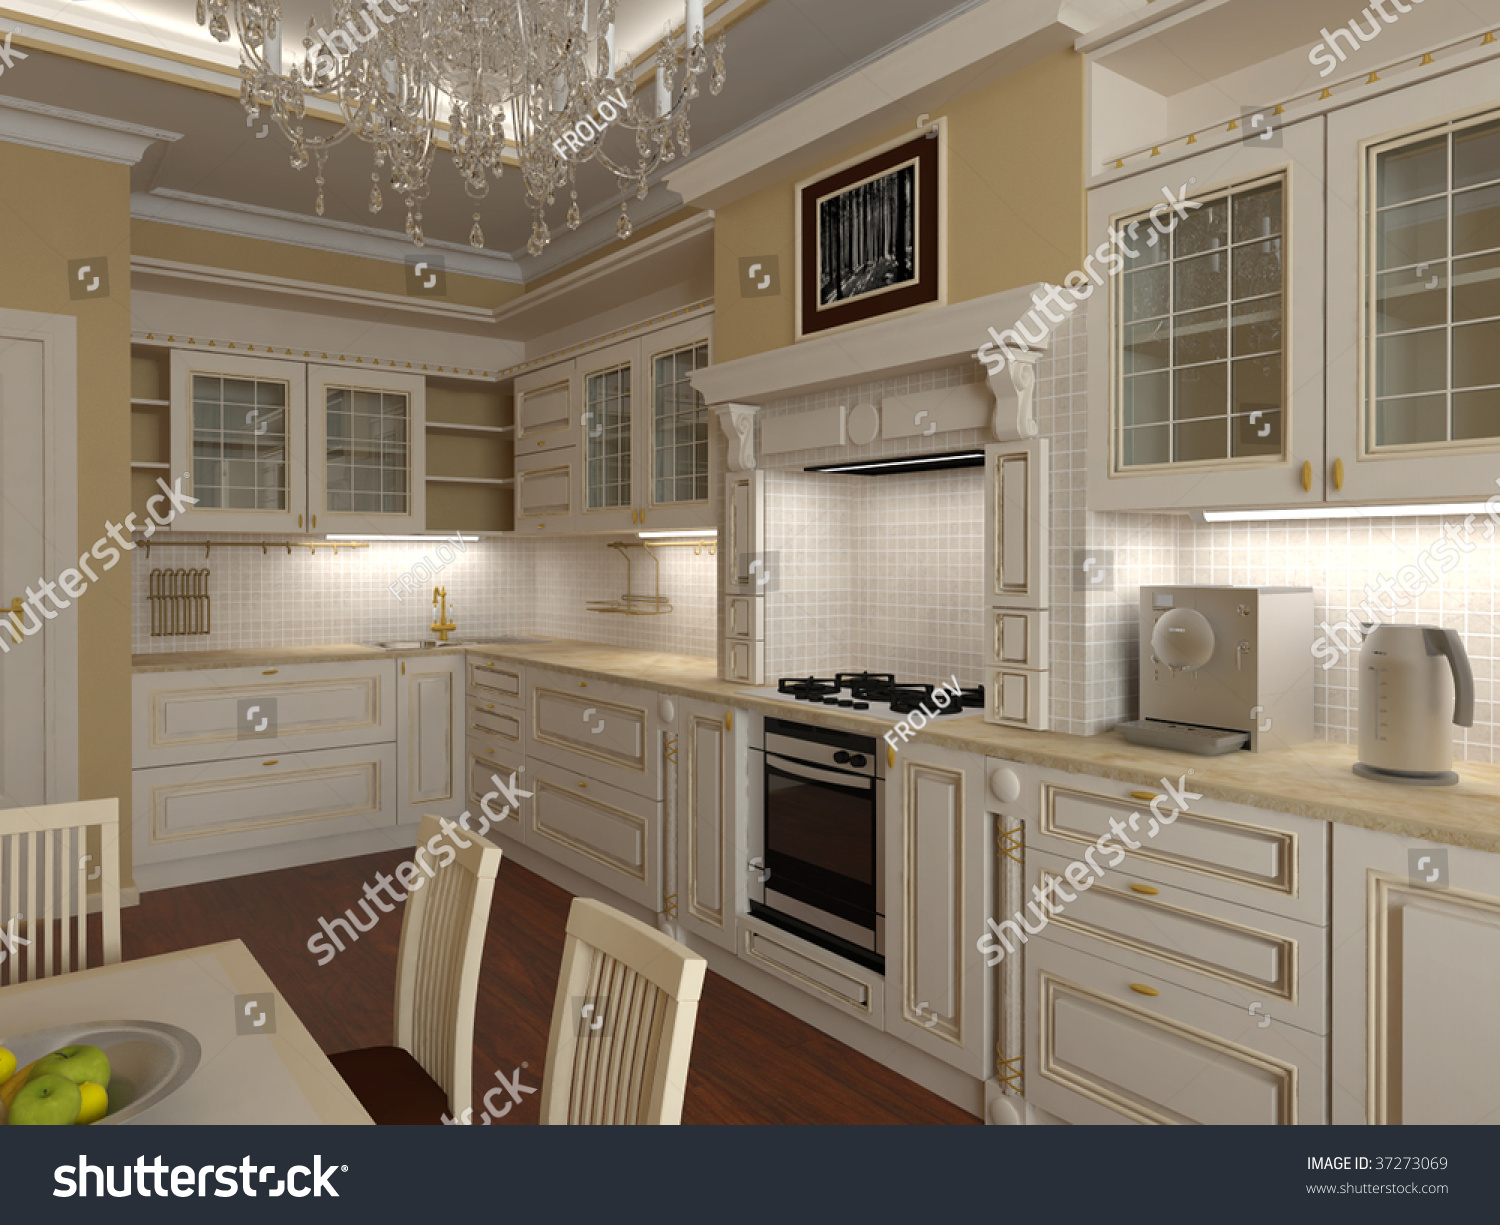 Classical Kitchens Interior Kitchens Classical Style Light Colour Stock Illustration